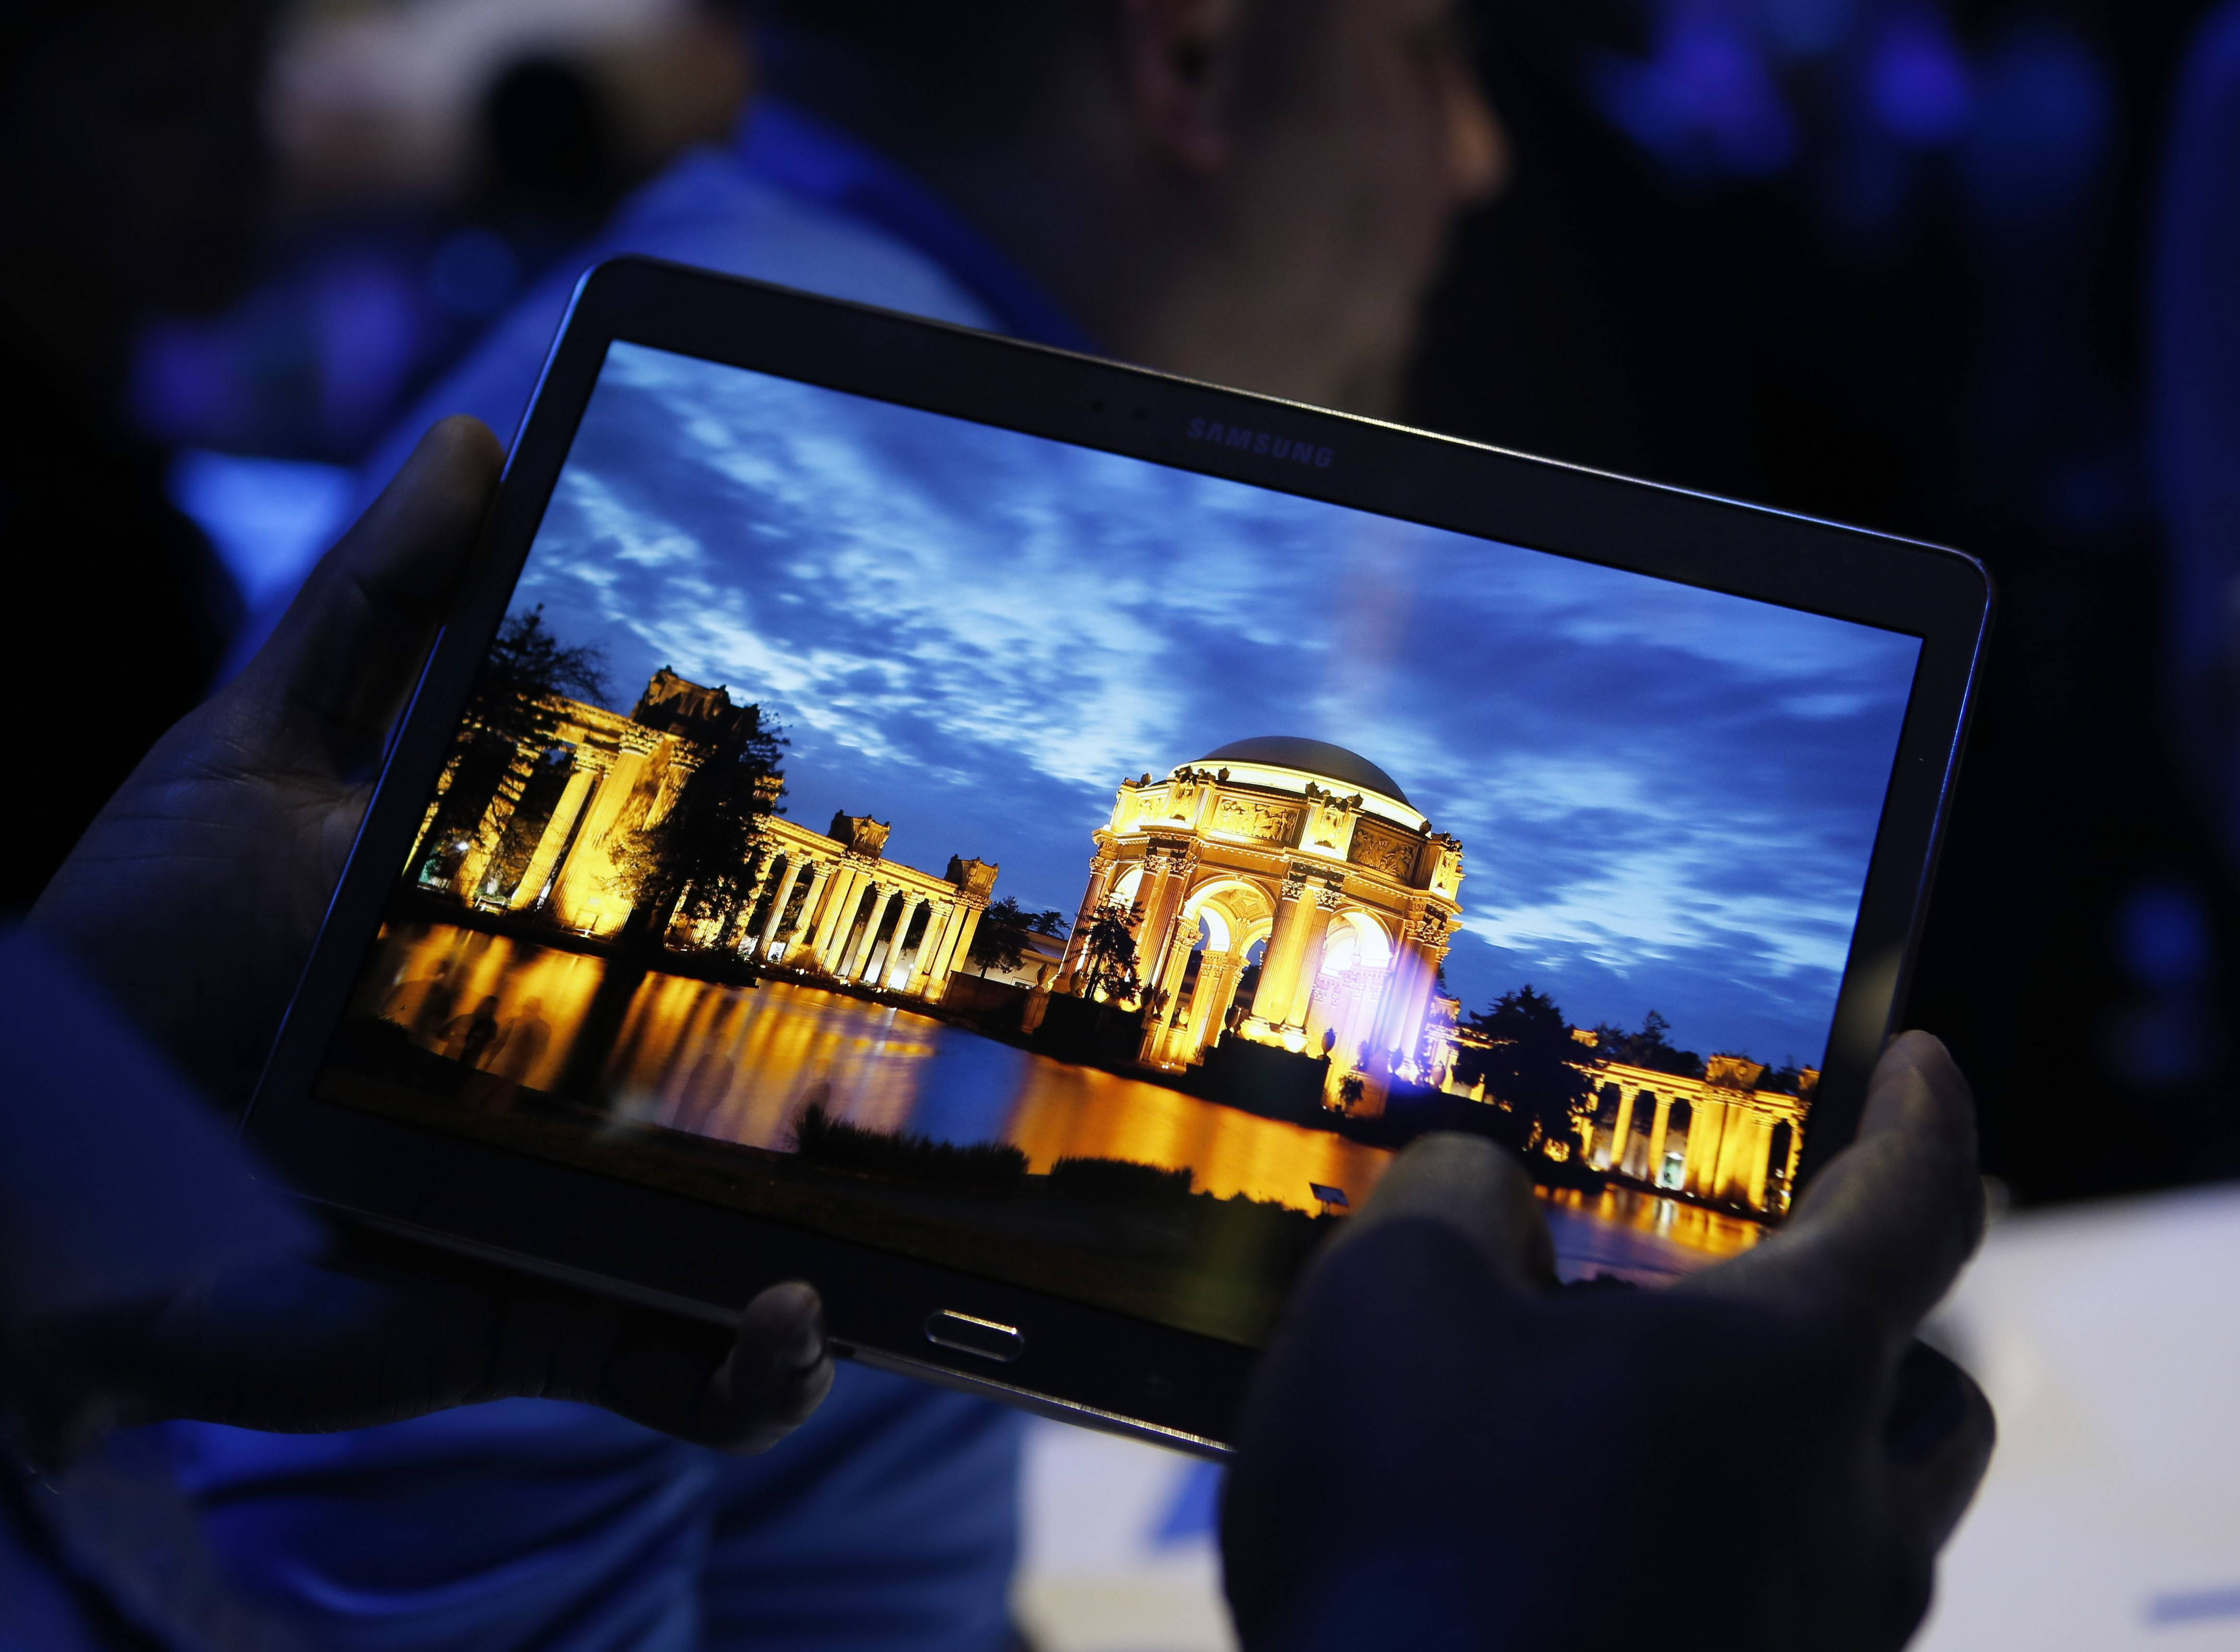 In this Thursday, June 12, 2014, file photo, a member of the media tries out a new Samsung Galaxy Tab S after the tablet's debut at a news conference in New York. The new display technology in Samsung's Galaxy Tab S tablet brings colors to life and reduces the device's bulk.